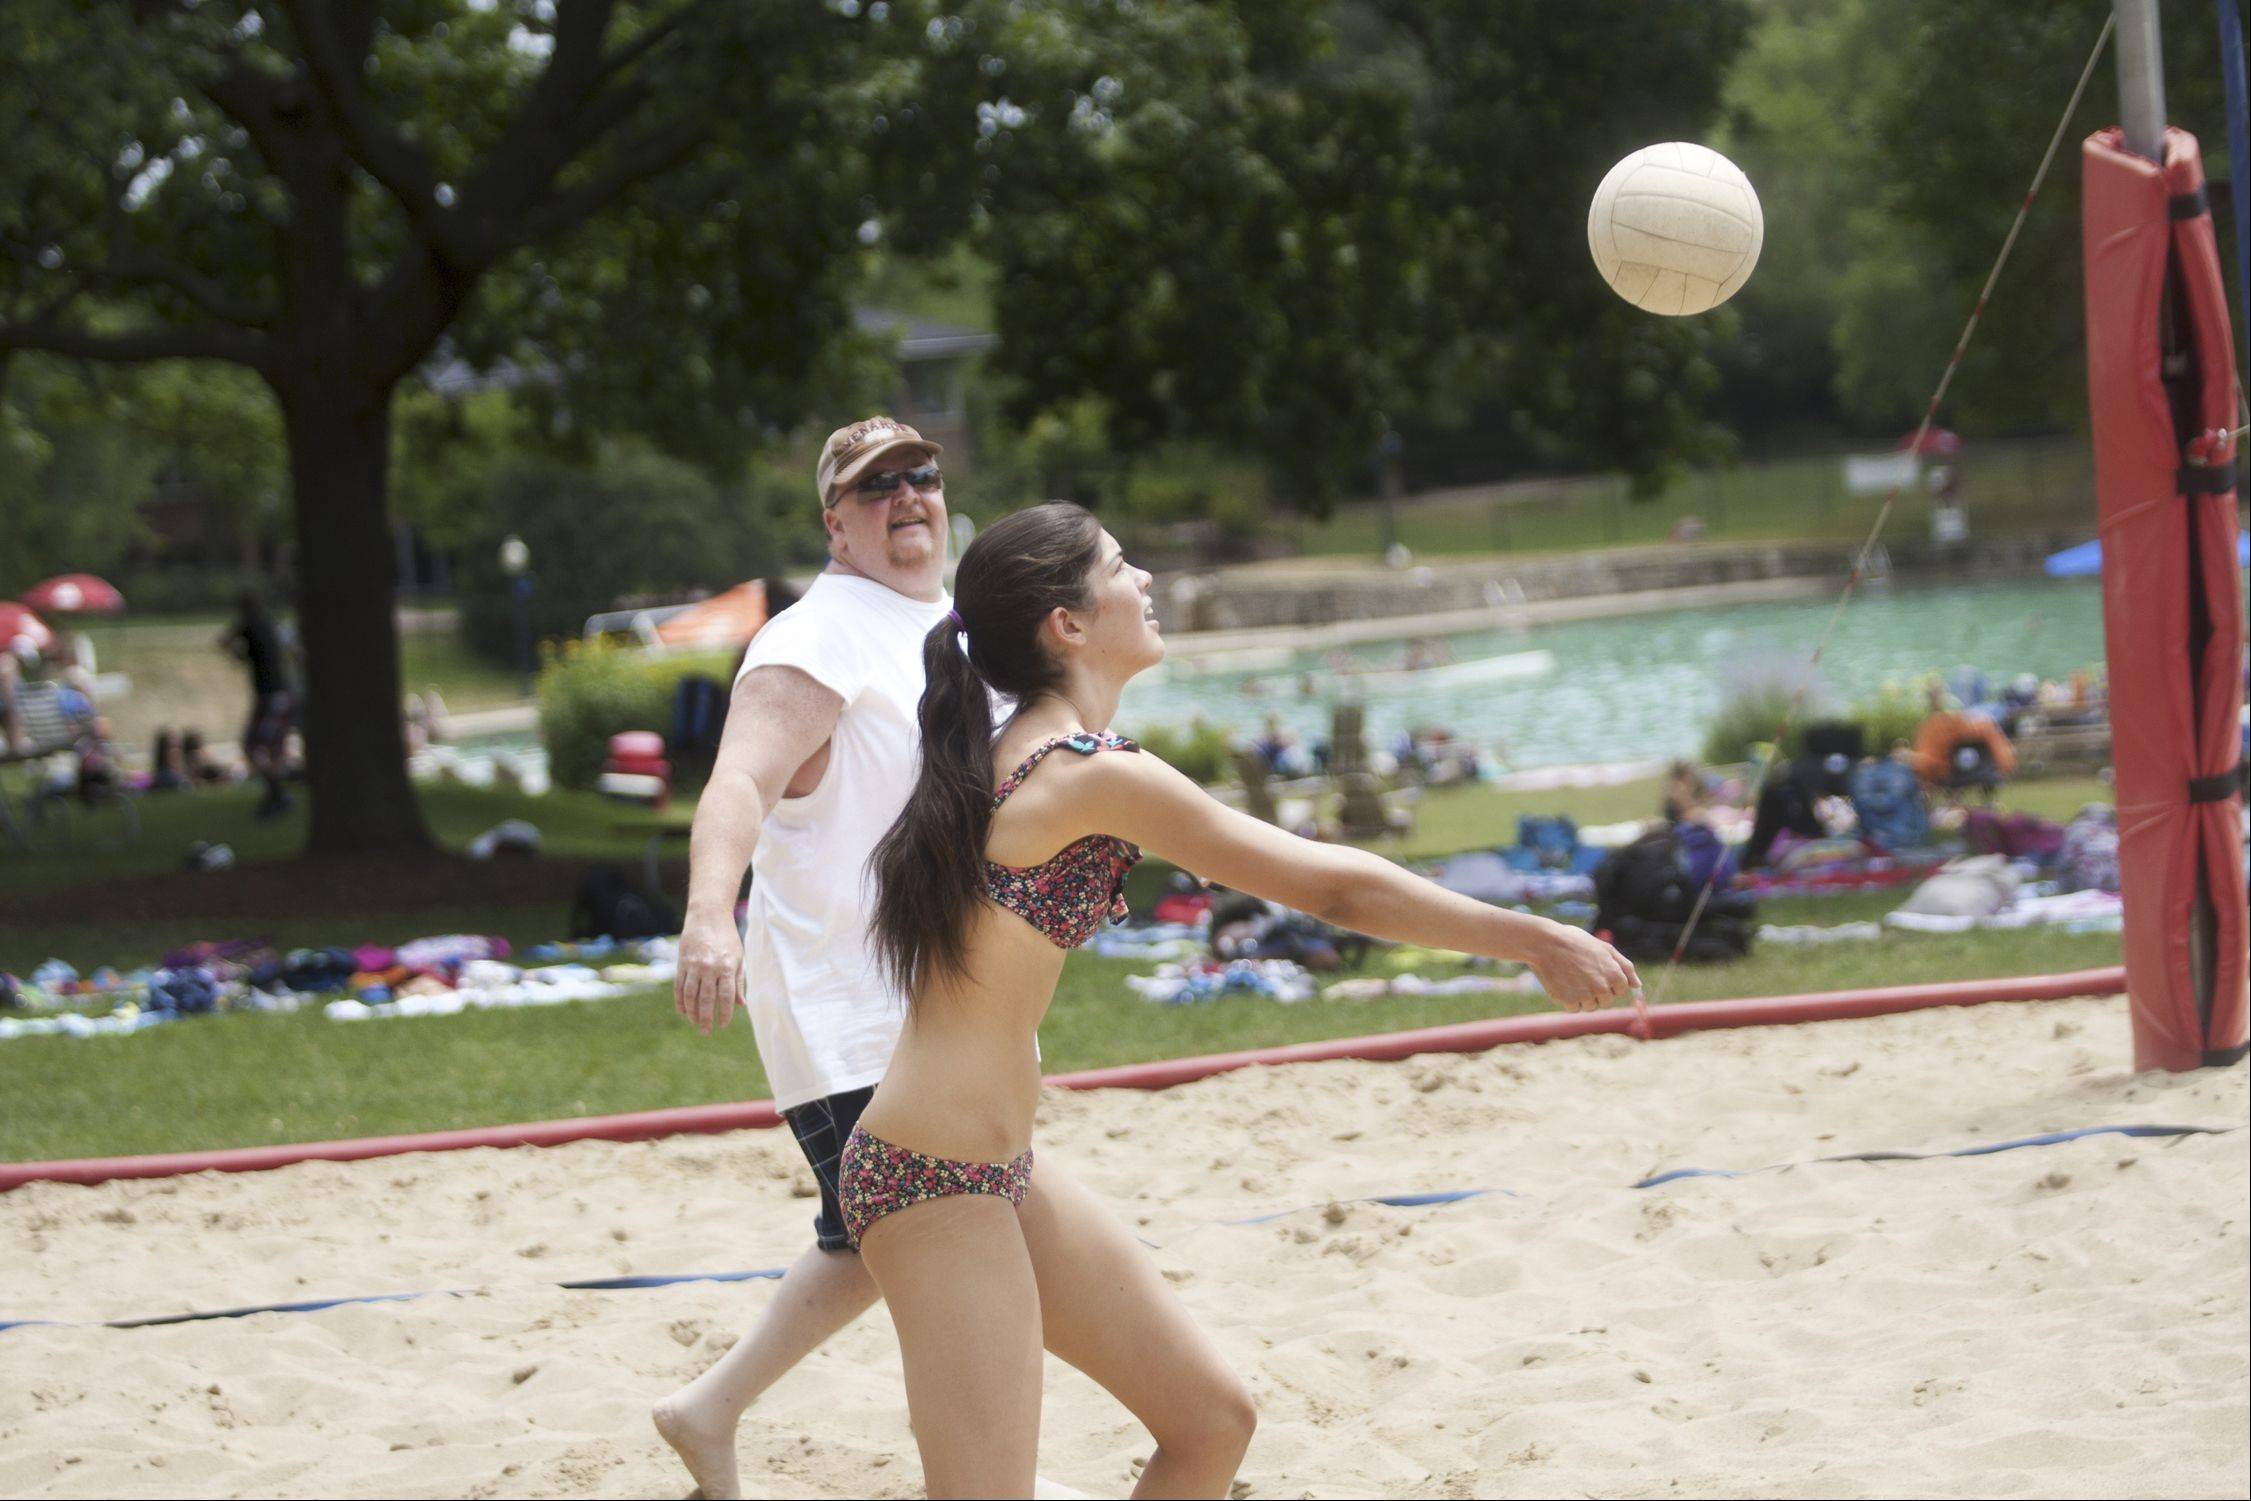 Sand volleyball is just of one of many recreational options available at Naperville's Centennial Beach.